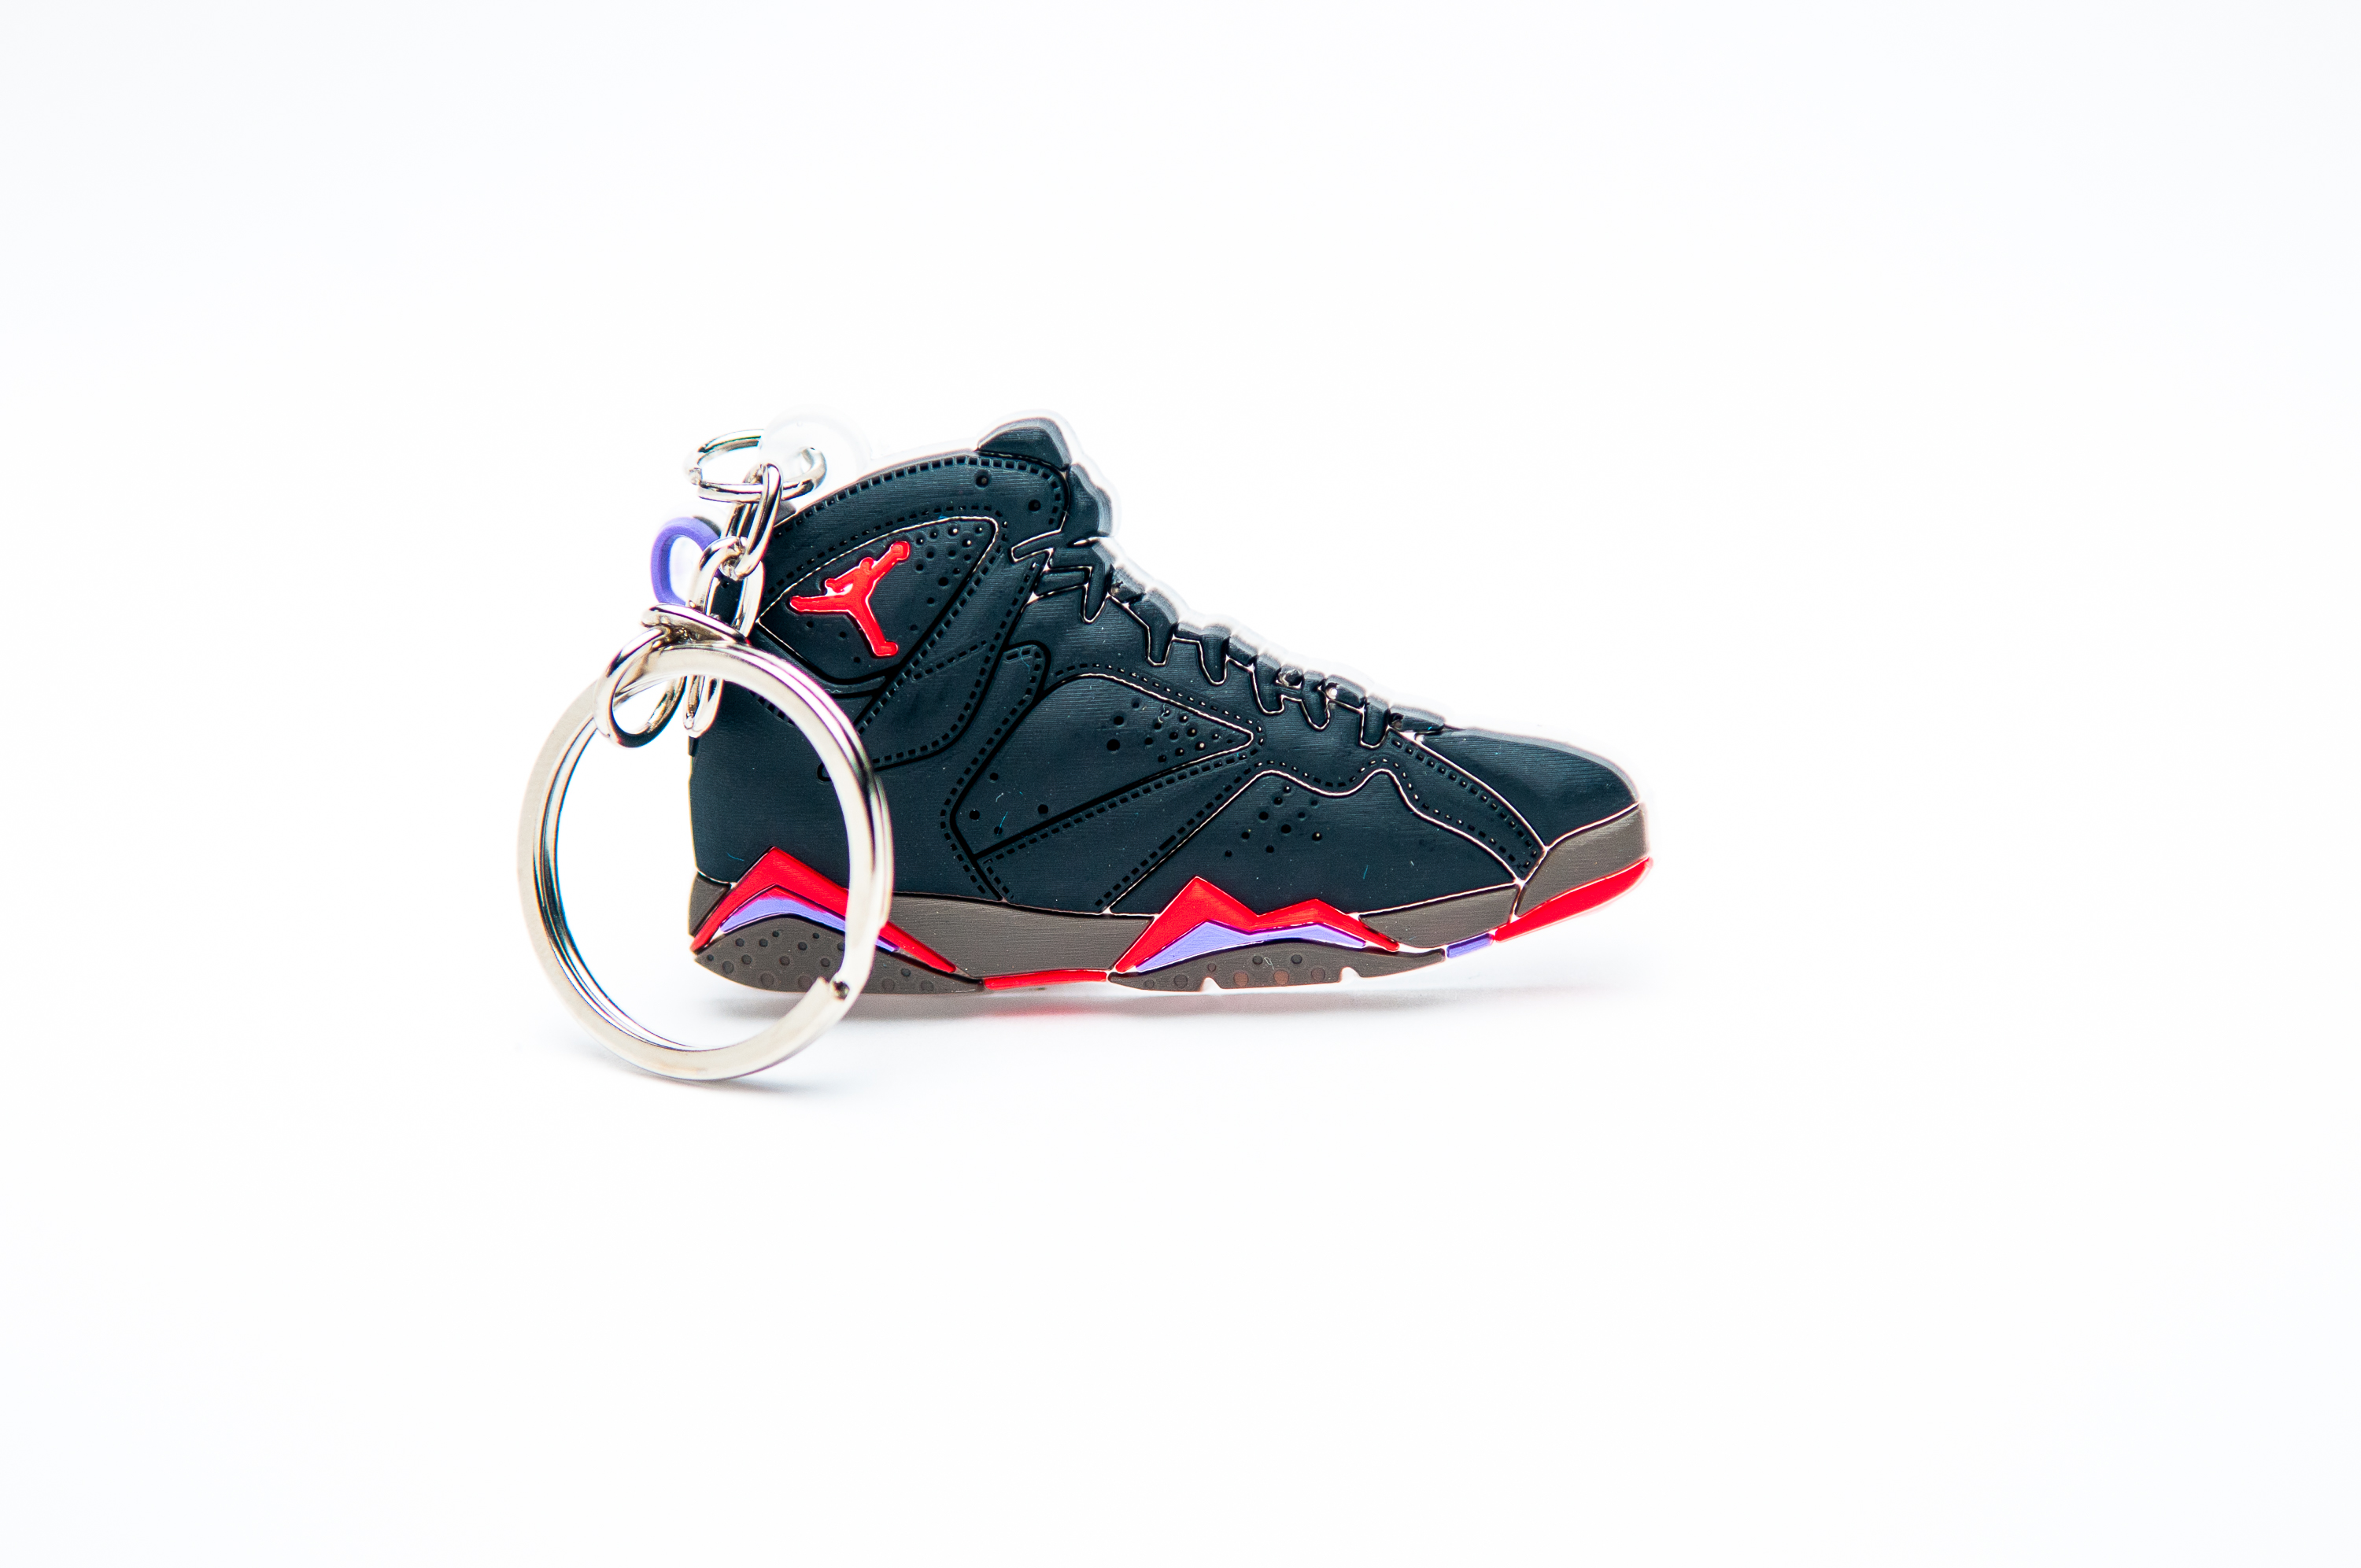 7b0df6dbee55ea Nike Air Jordan 7 Retro Black Purple Red - Kool keyringsKool keyrings